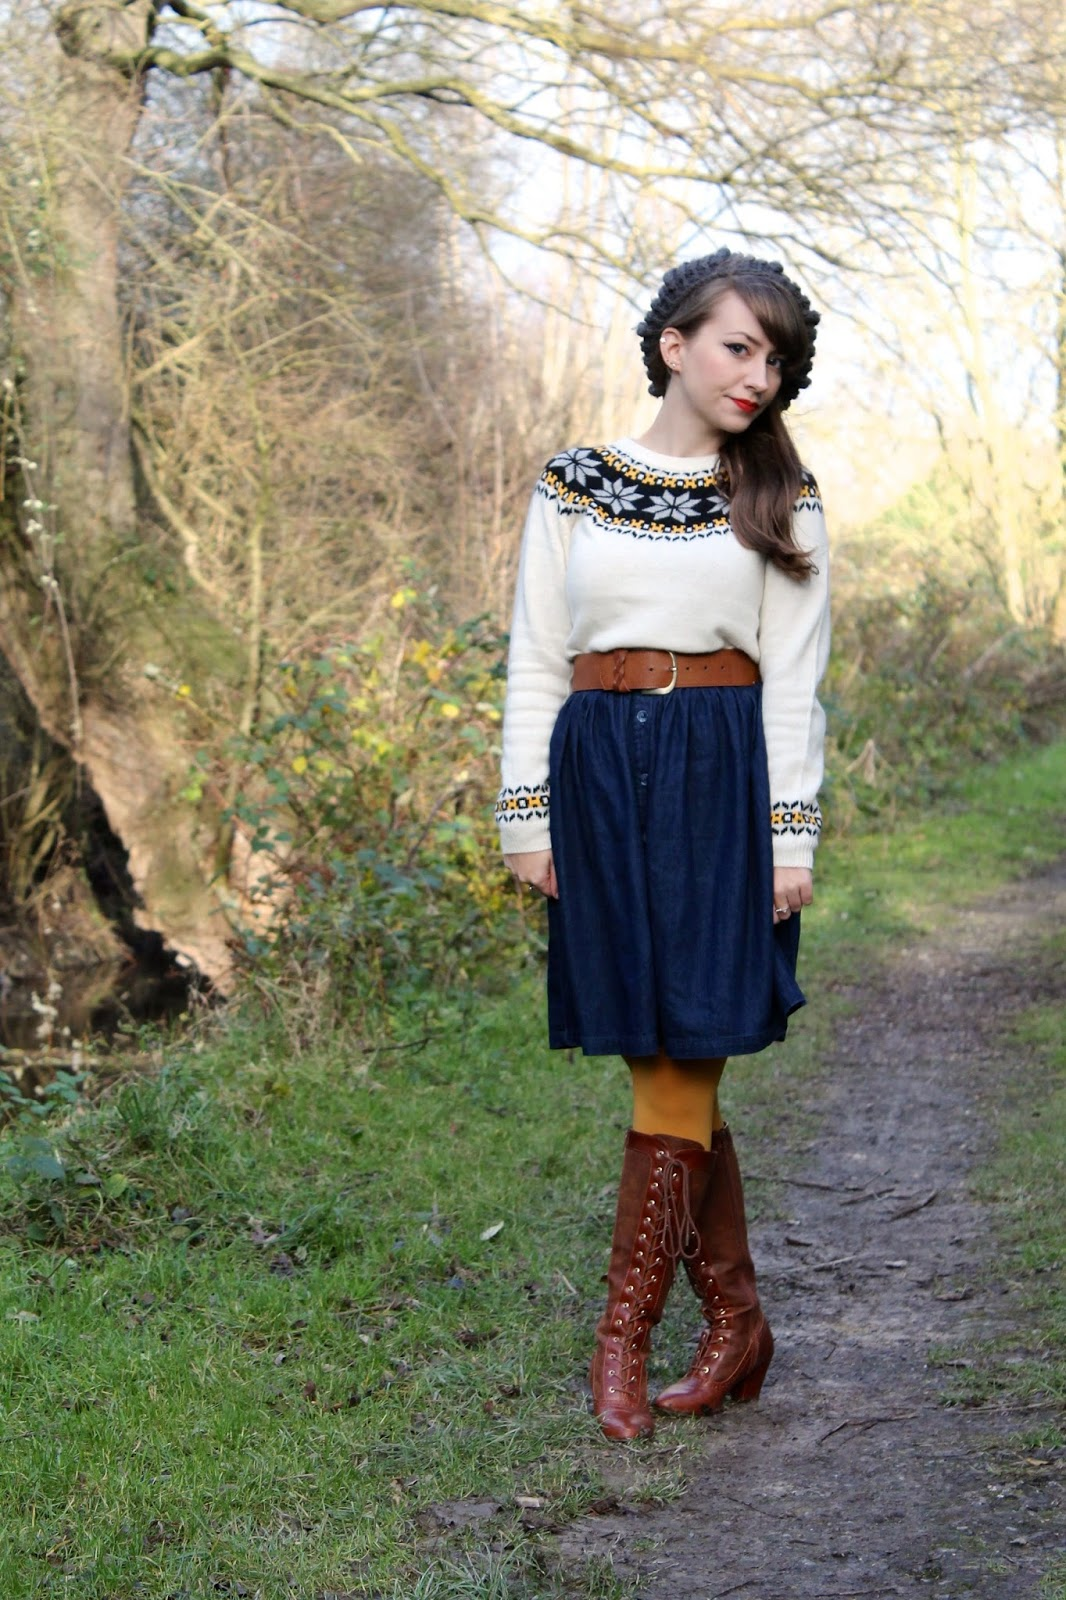 Fairisle jumper, denim skirt and knee high lace-up boots